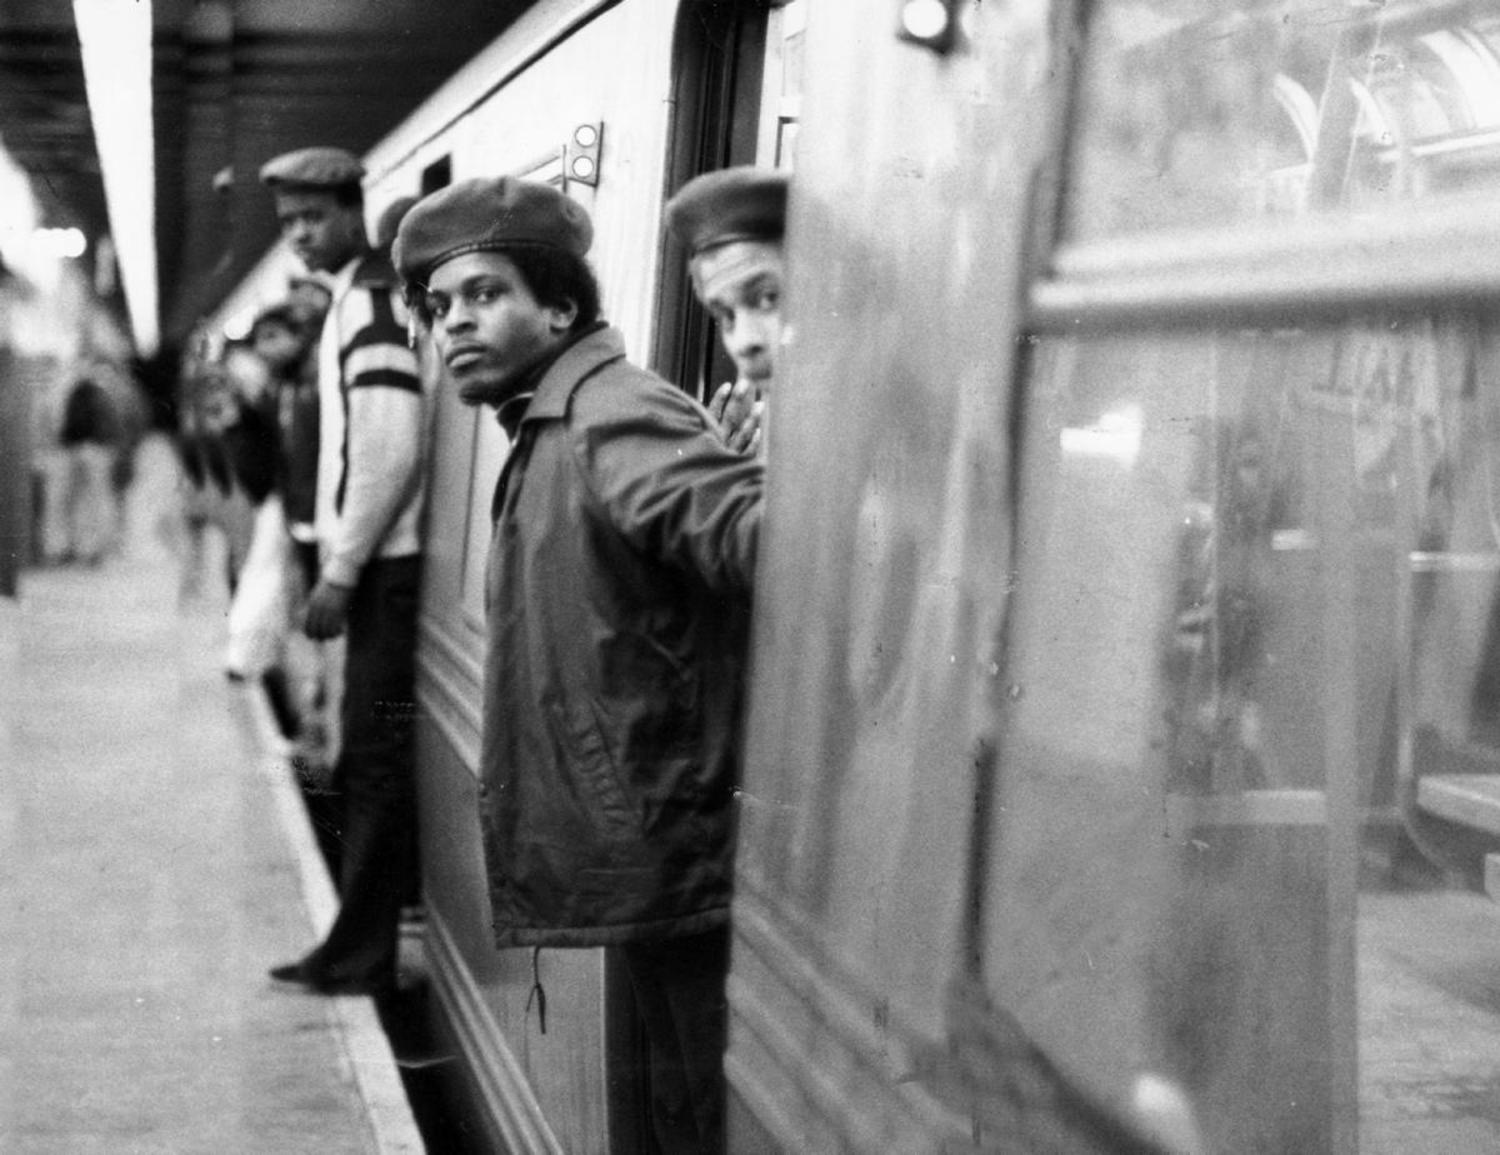 1980's: Members of the volunteer crime fighting organization, The Guardian Angels, patrol a subway car. The group was founded in 1979 in New York City in response to the increase in crime on the subway.